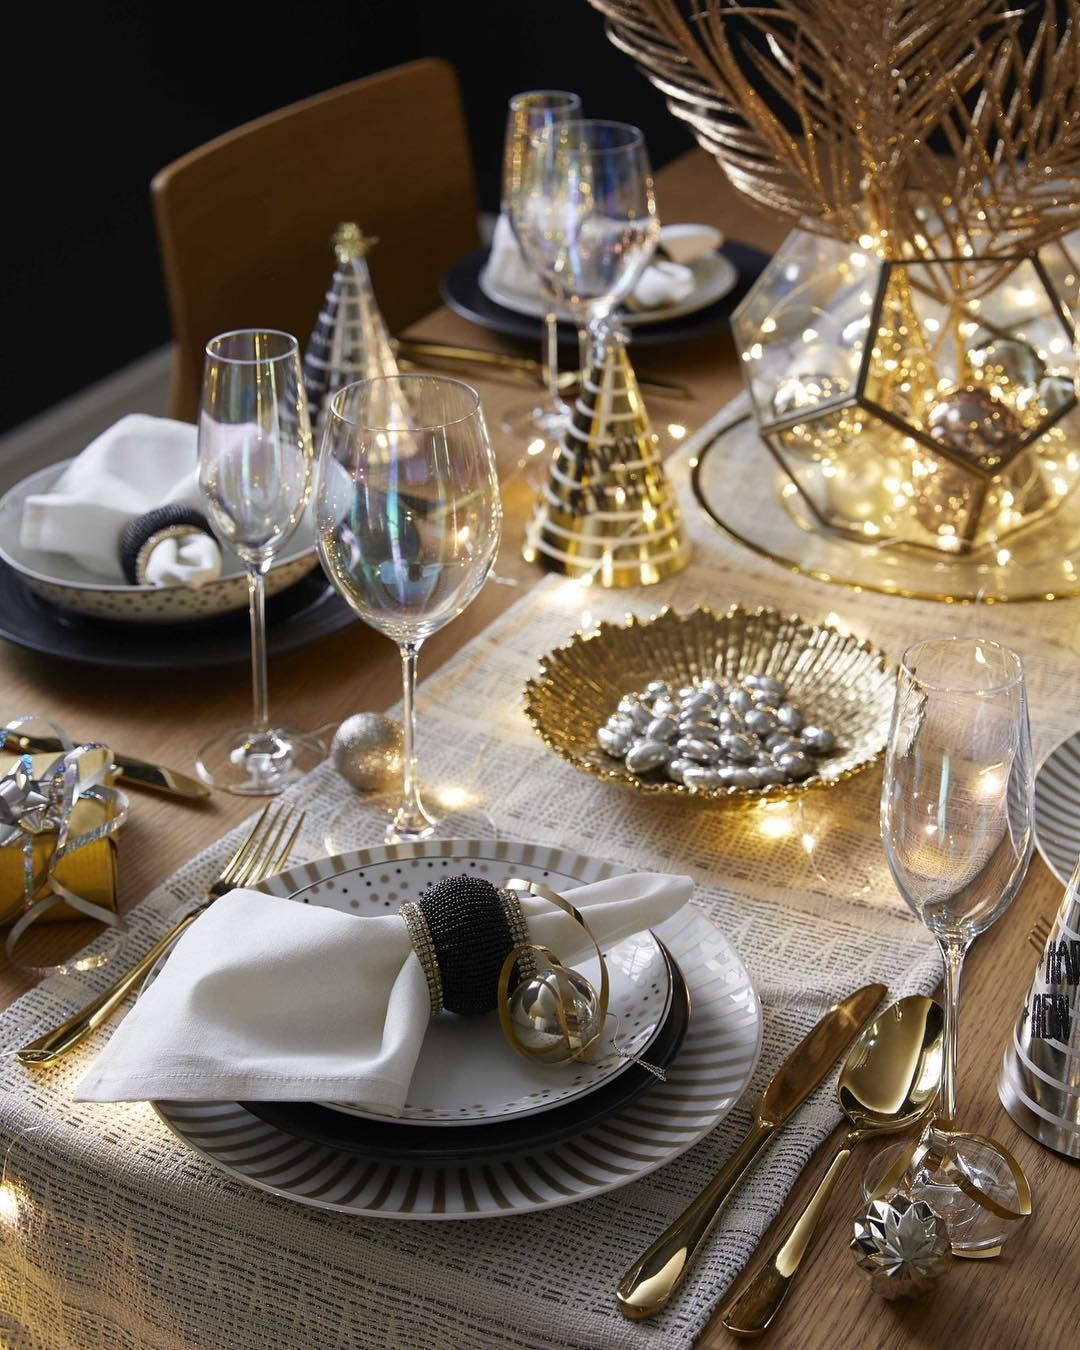 Nye Dining From Dunelmuk Reference Number 973865 High Res Image Available At Pr Christmas On A Budget Christmas Decorations Apartment Christmas Decorations